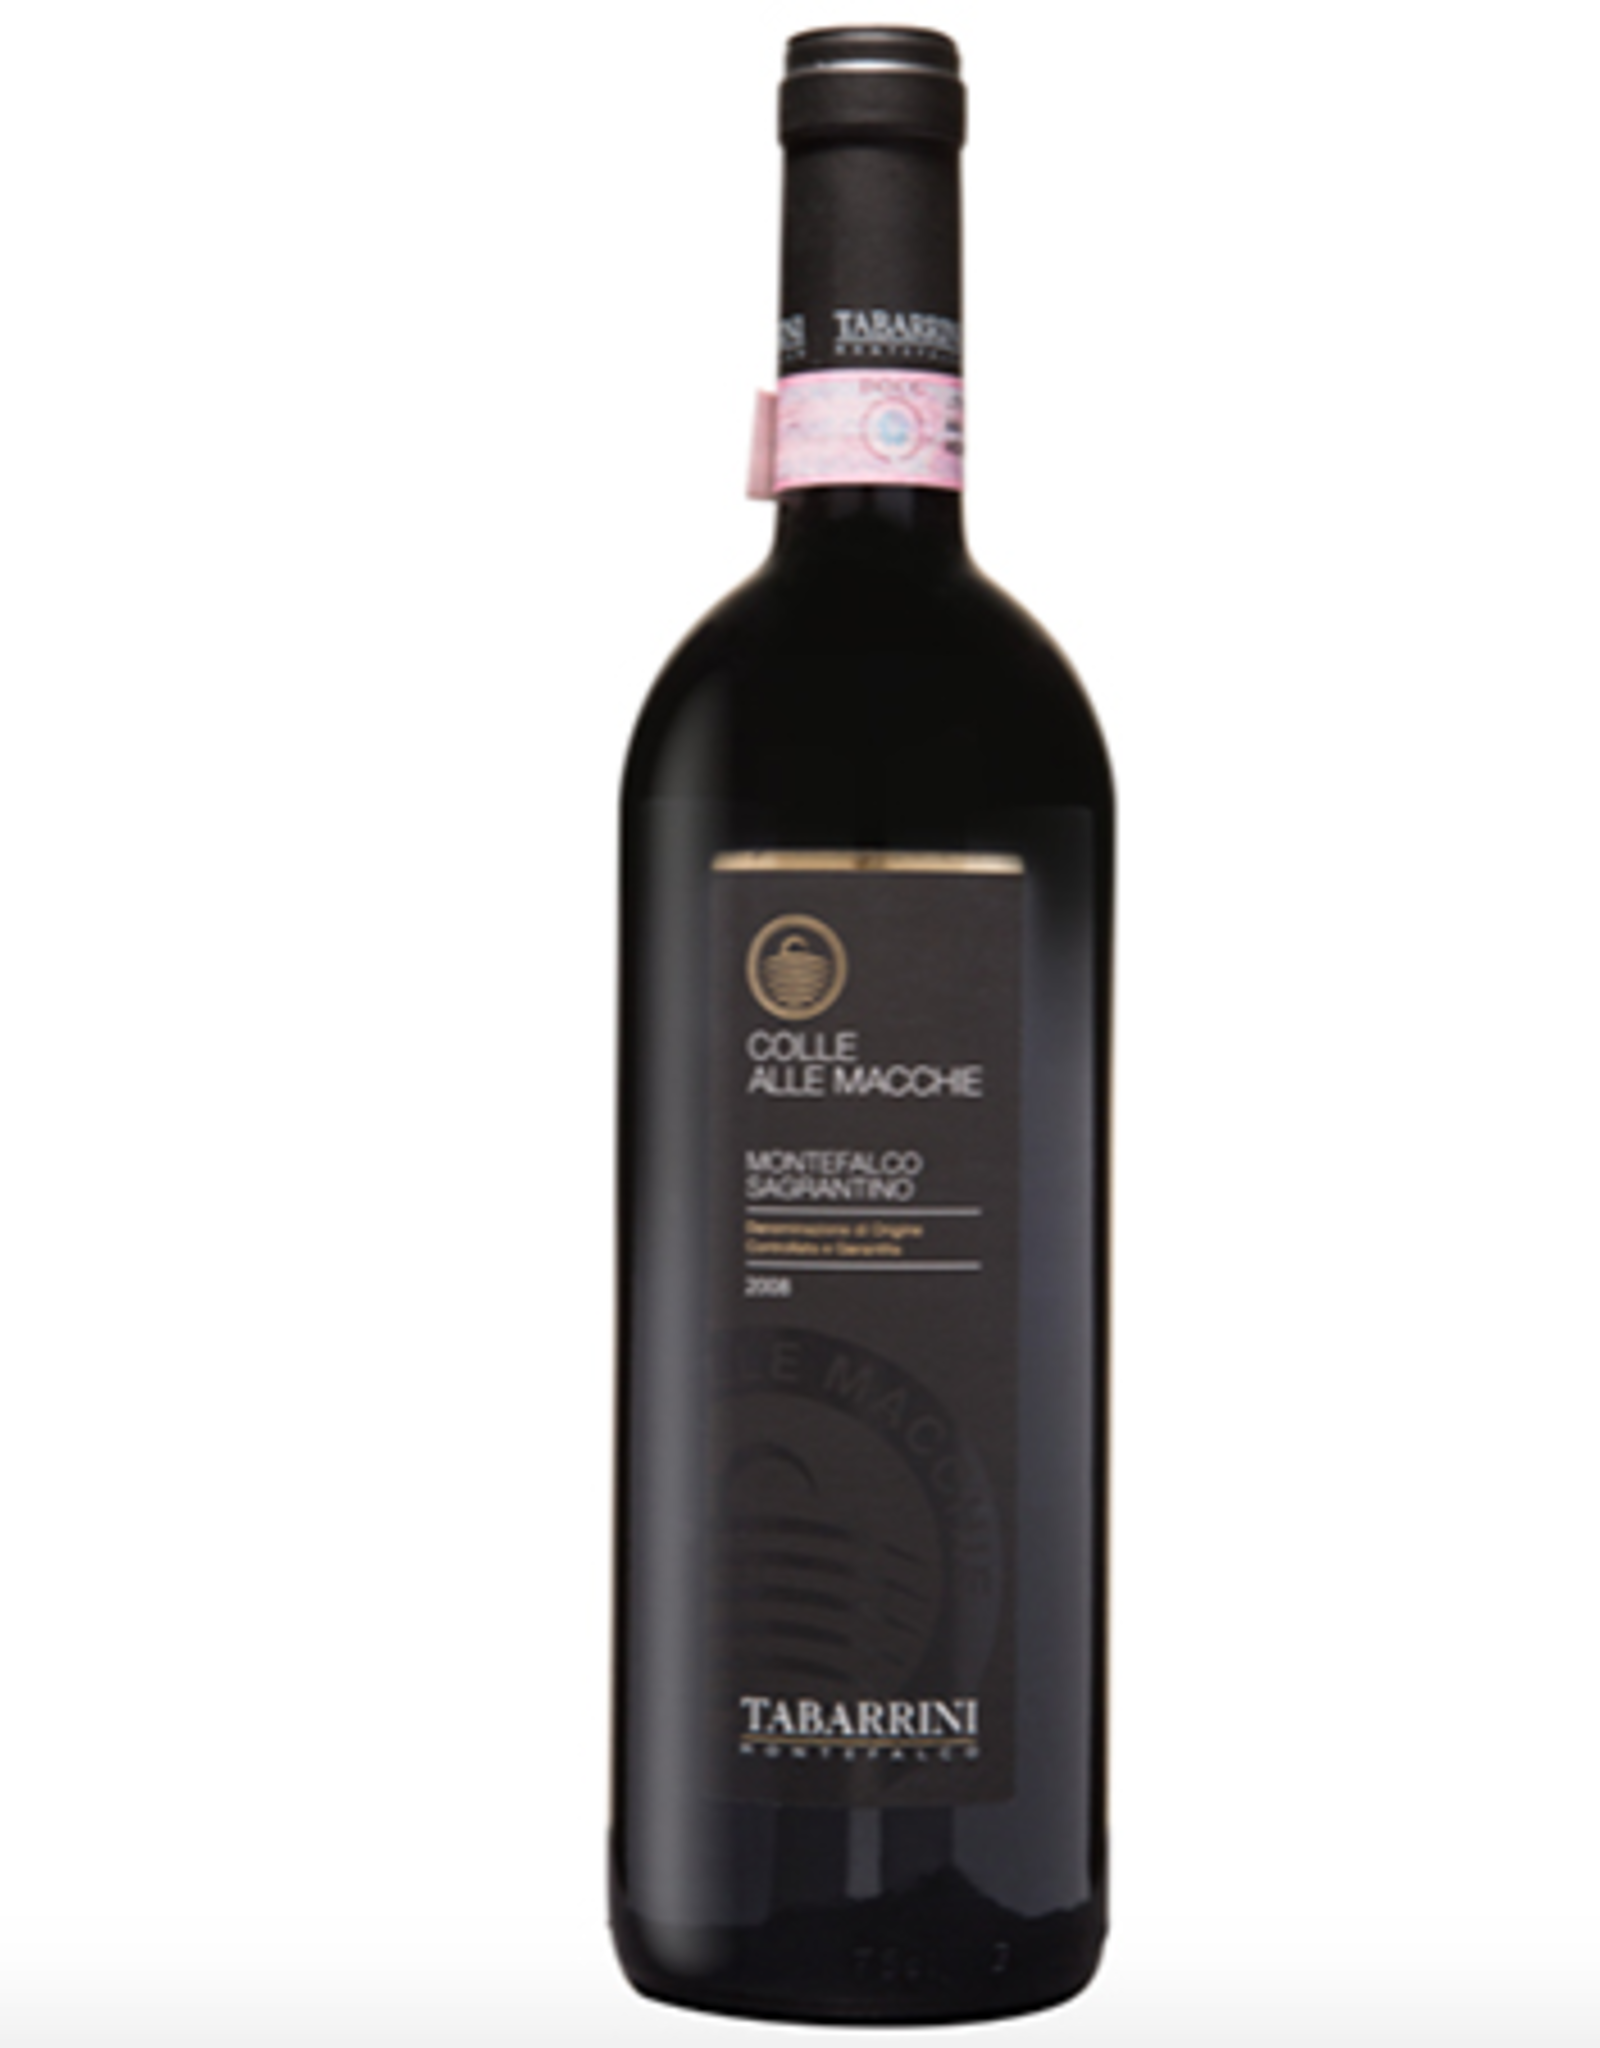 None Tabarrini Montefalco Sagrantino Colle Alle Macchie 2013